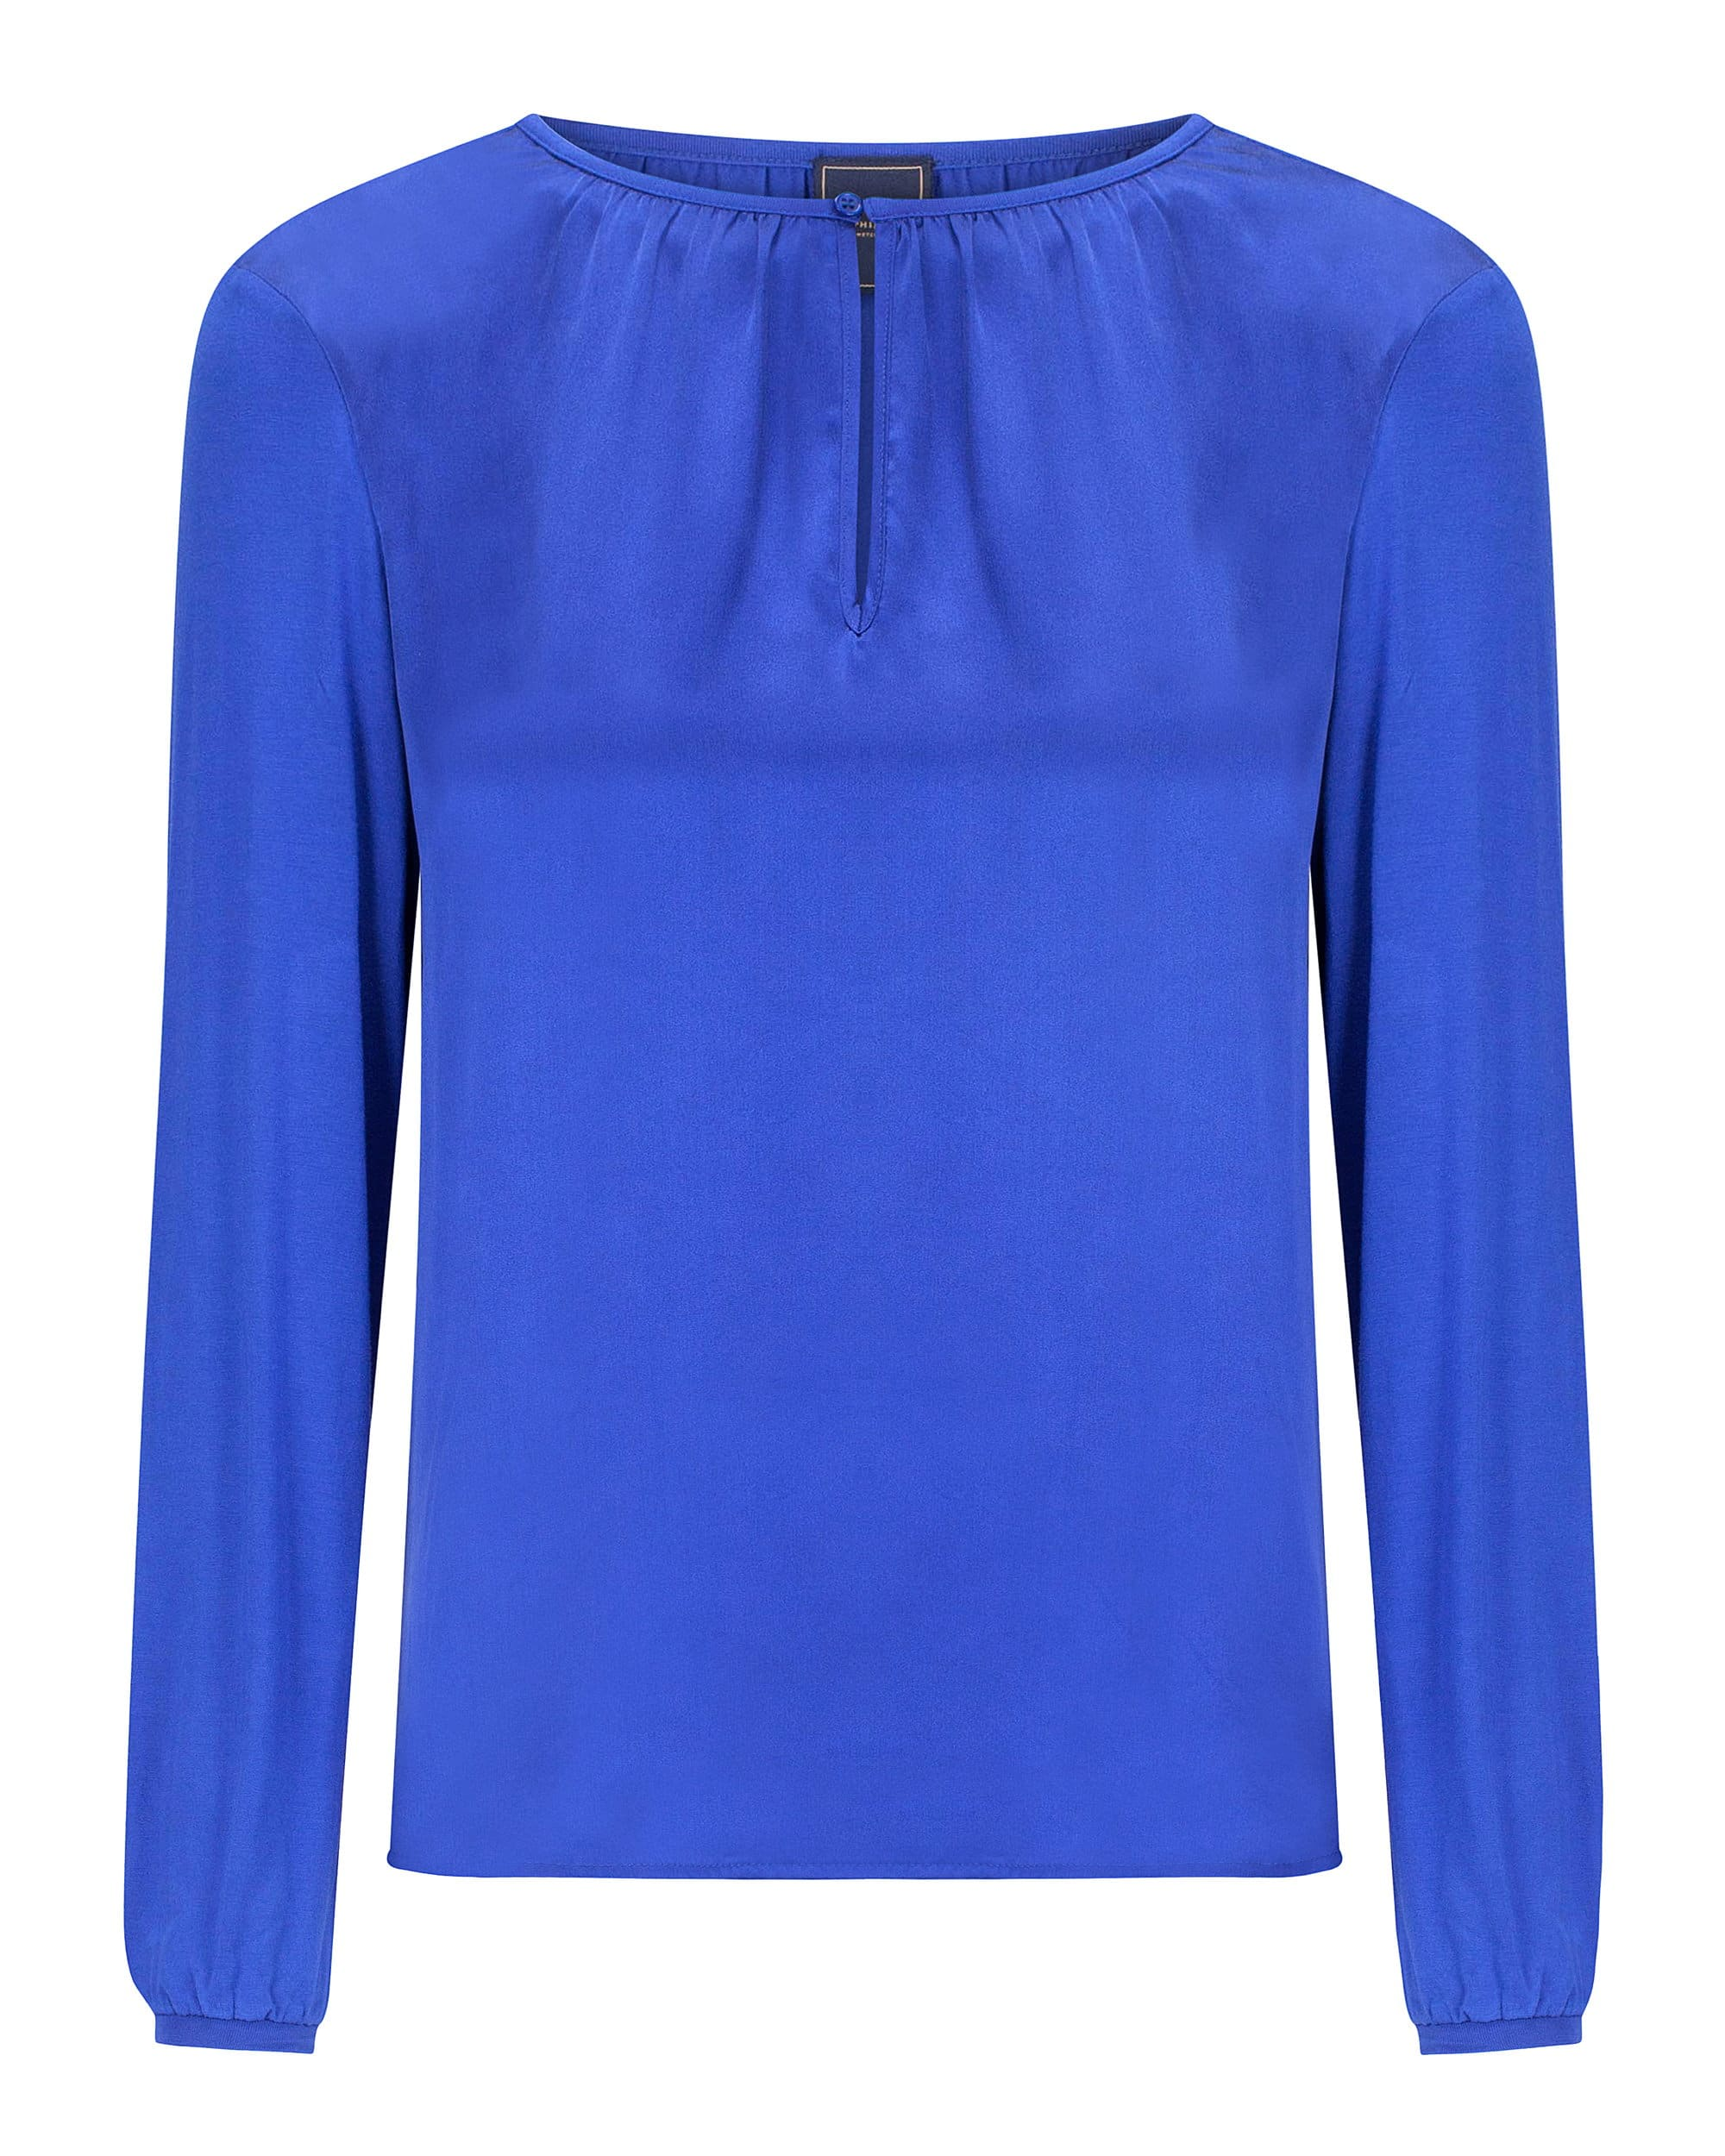 Josephine en Co royal blauwe Gill top